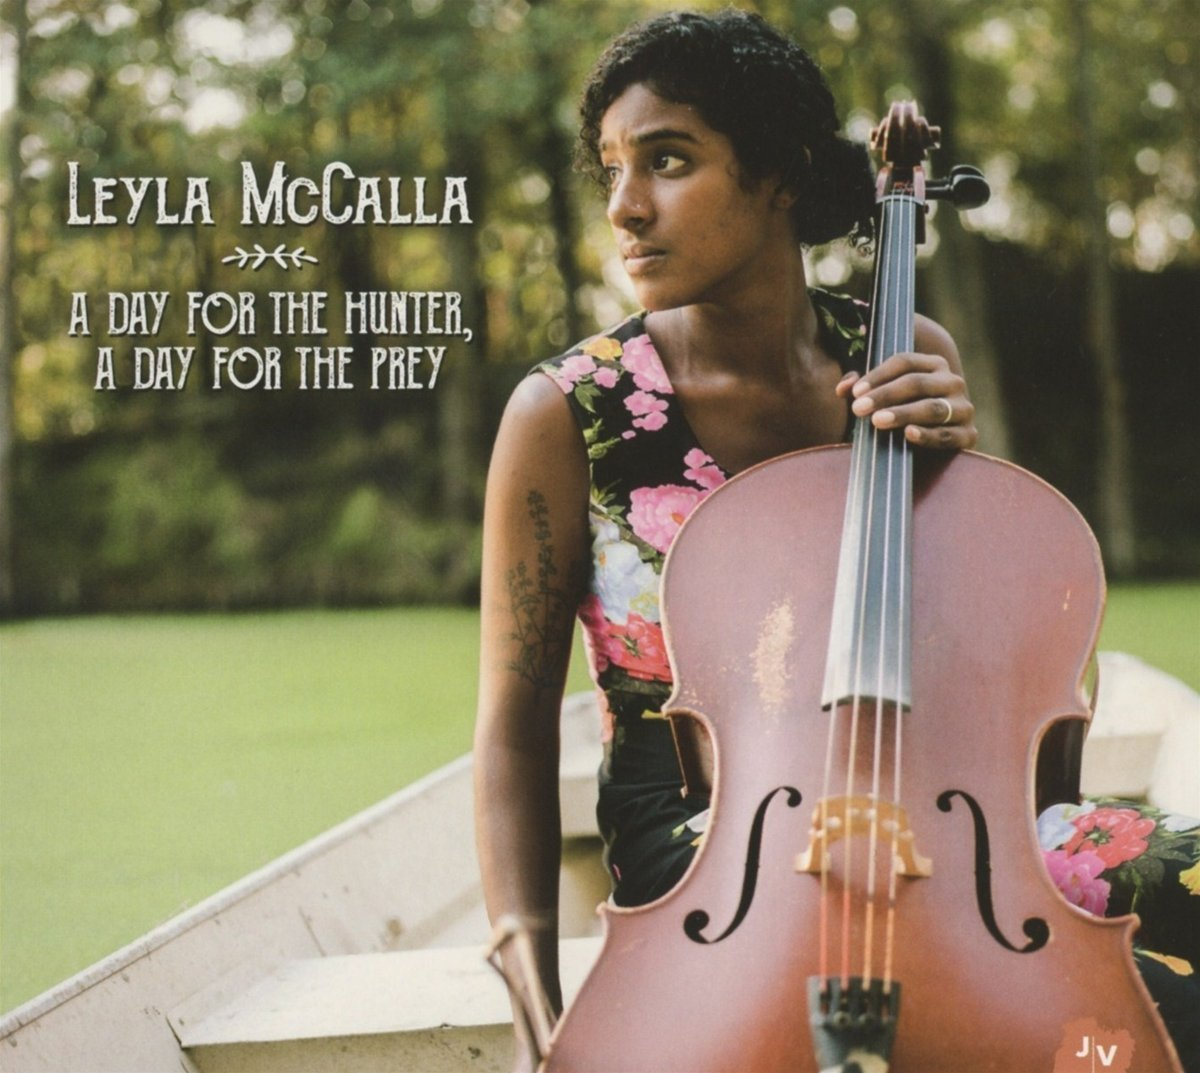 Leyla McCalla: A Day for the Hunter, A Day for the Prey ...